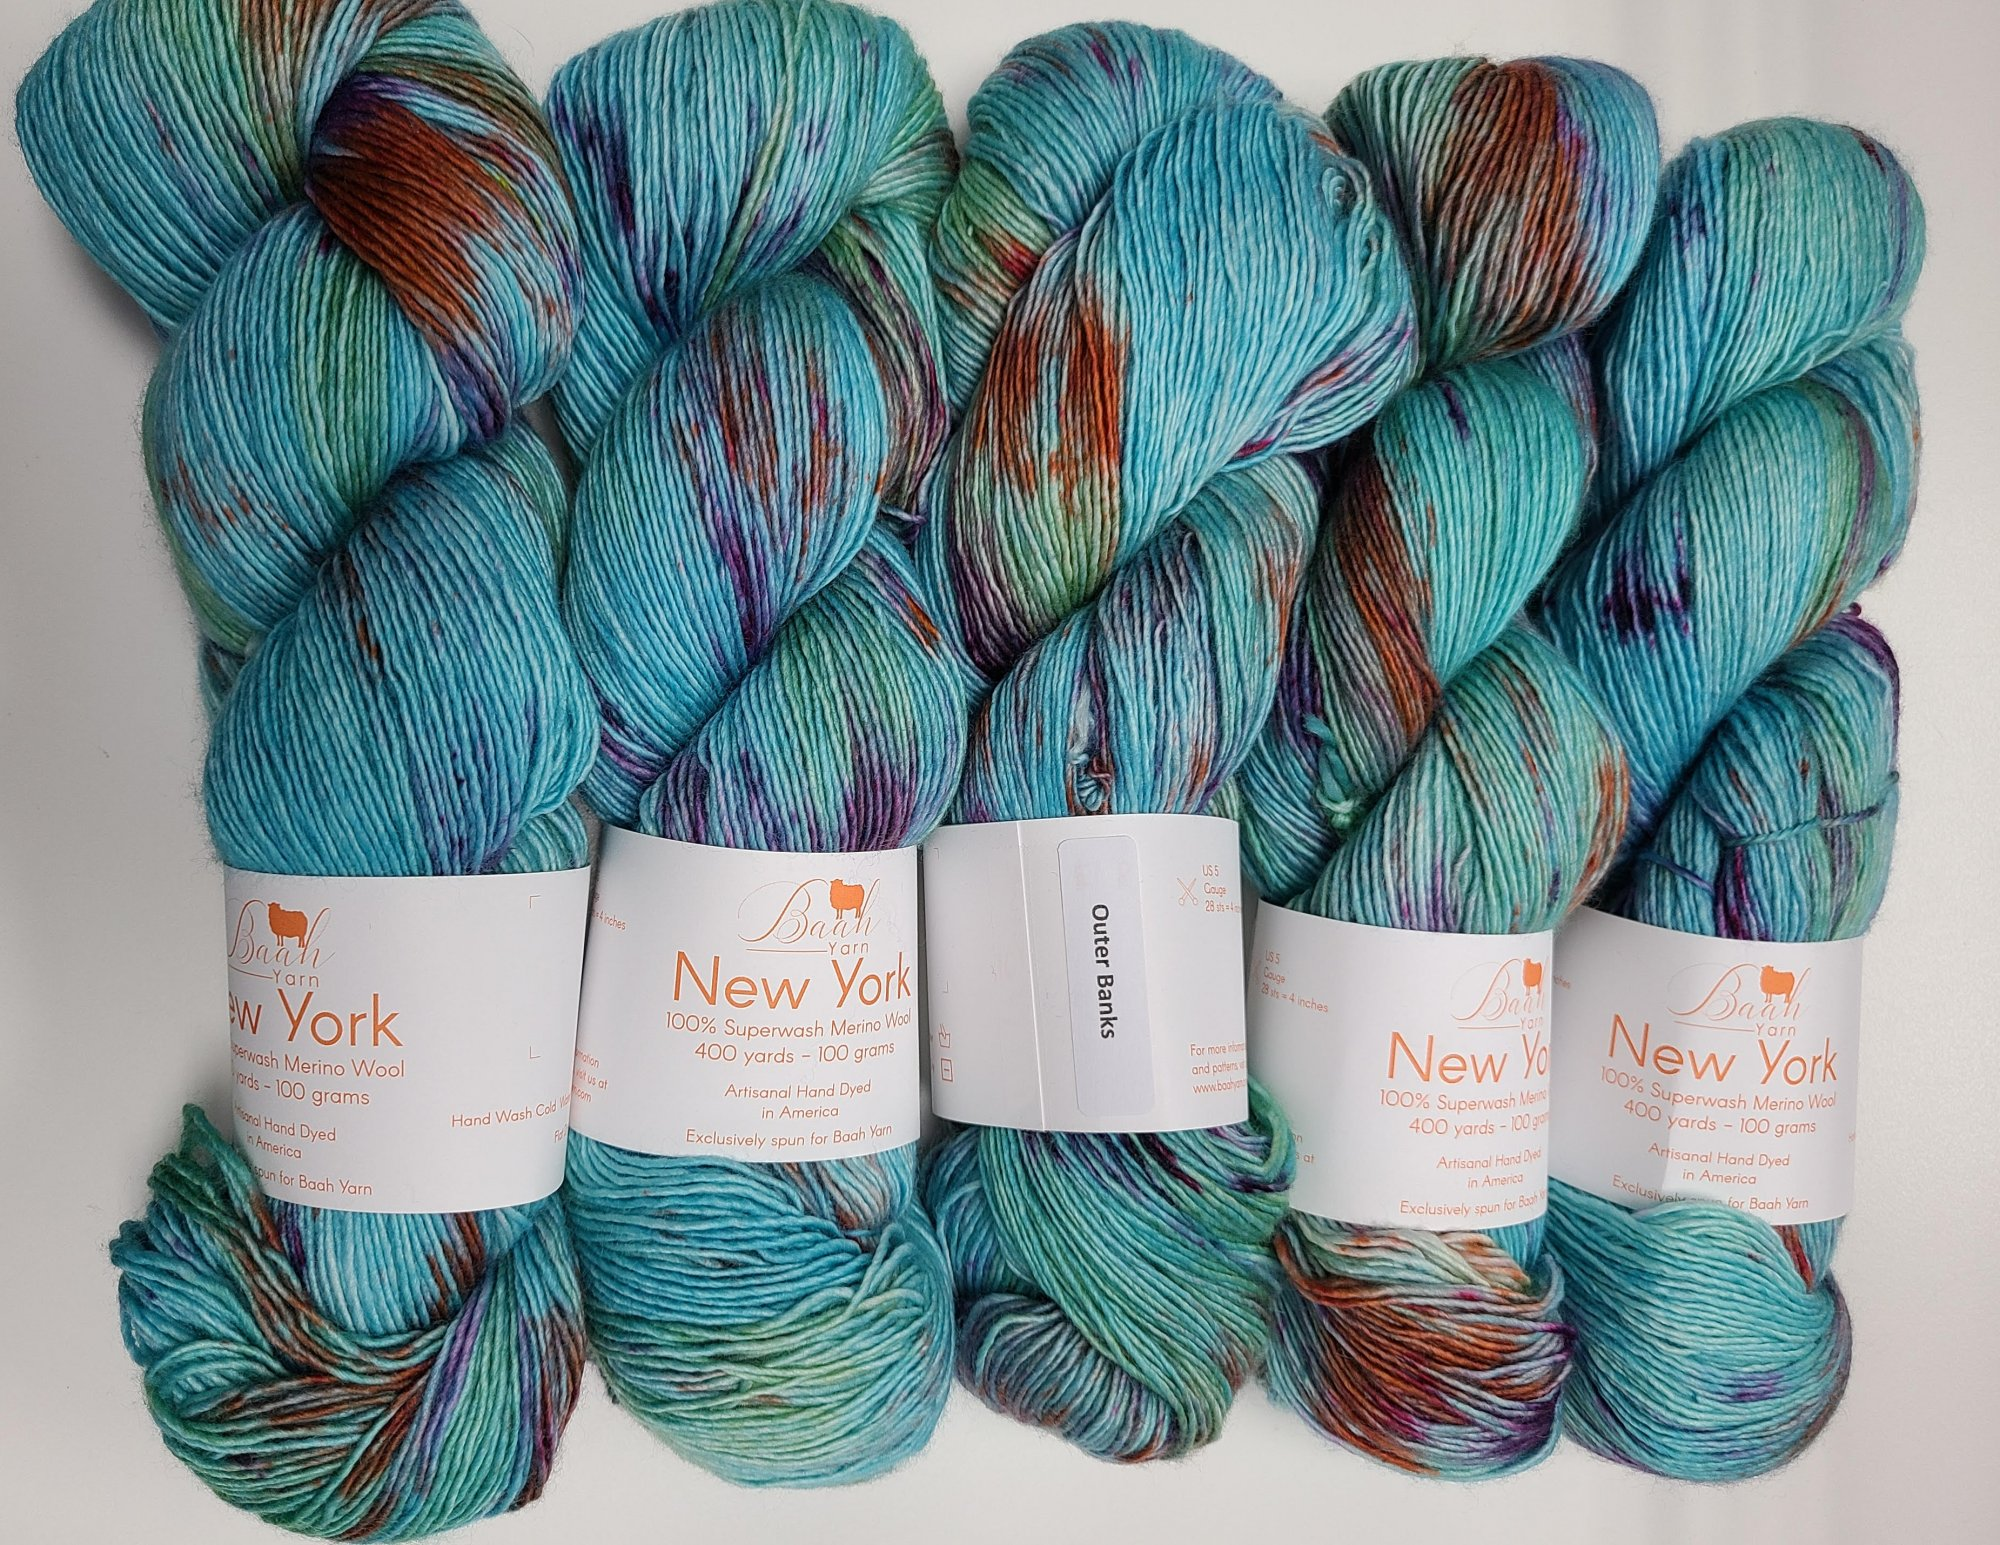 Y & M Signature Yarn  New York  - Color: Outer Banks